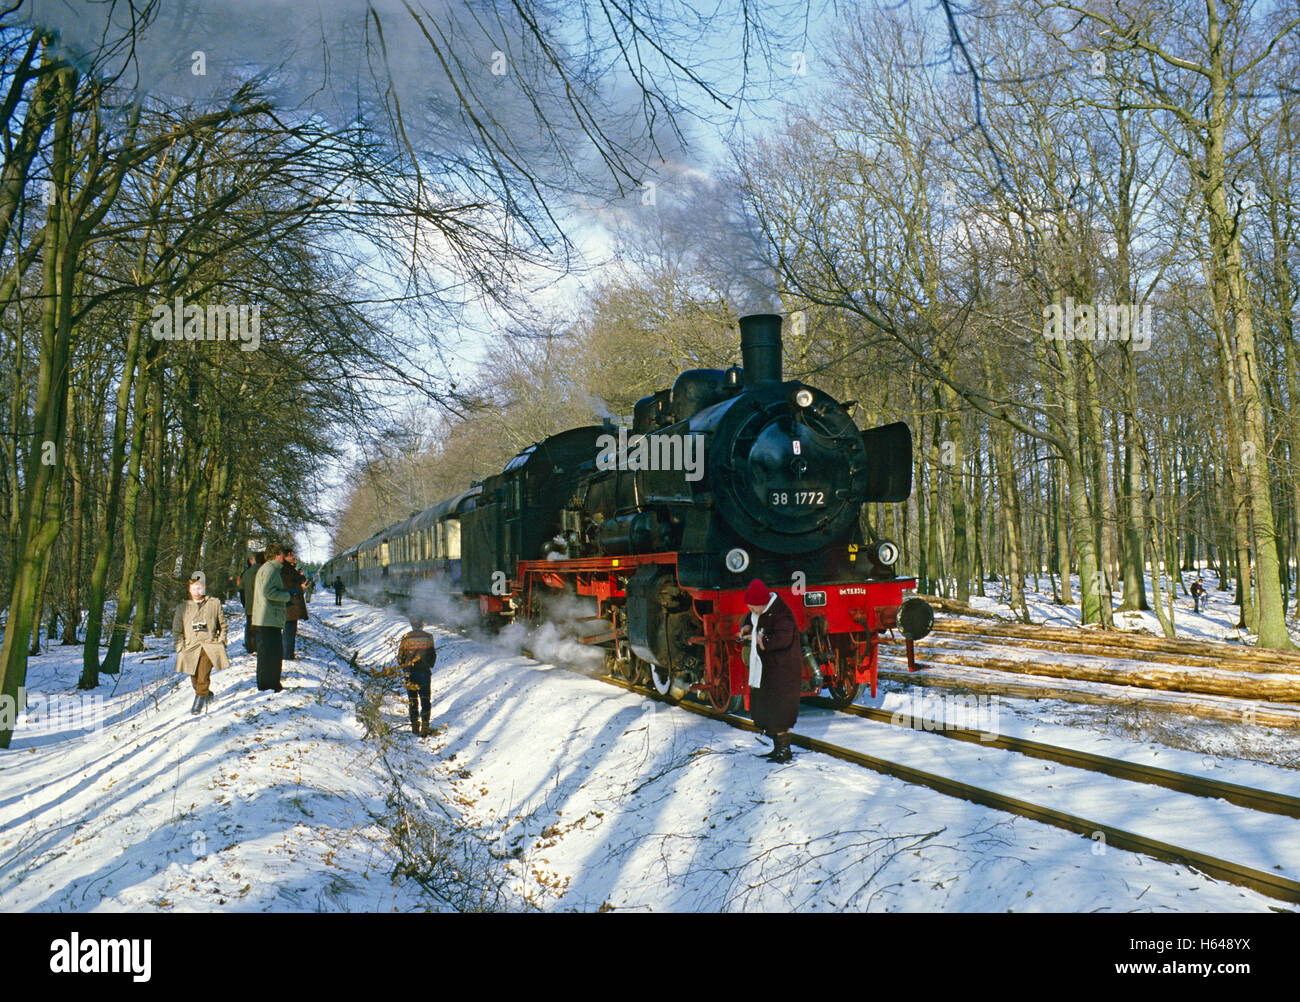 Steam train excursion from Muenster with P8 class loco no